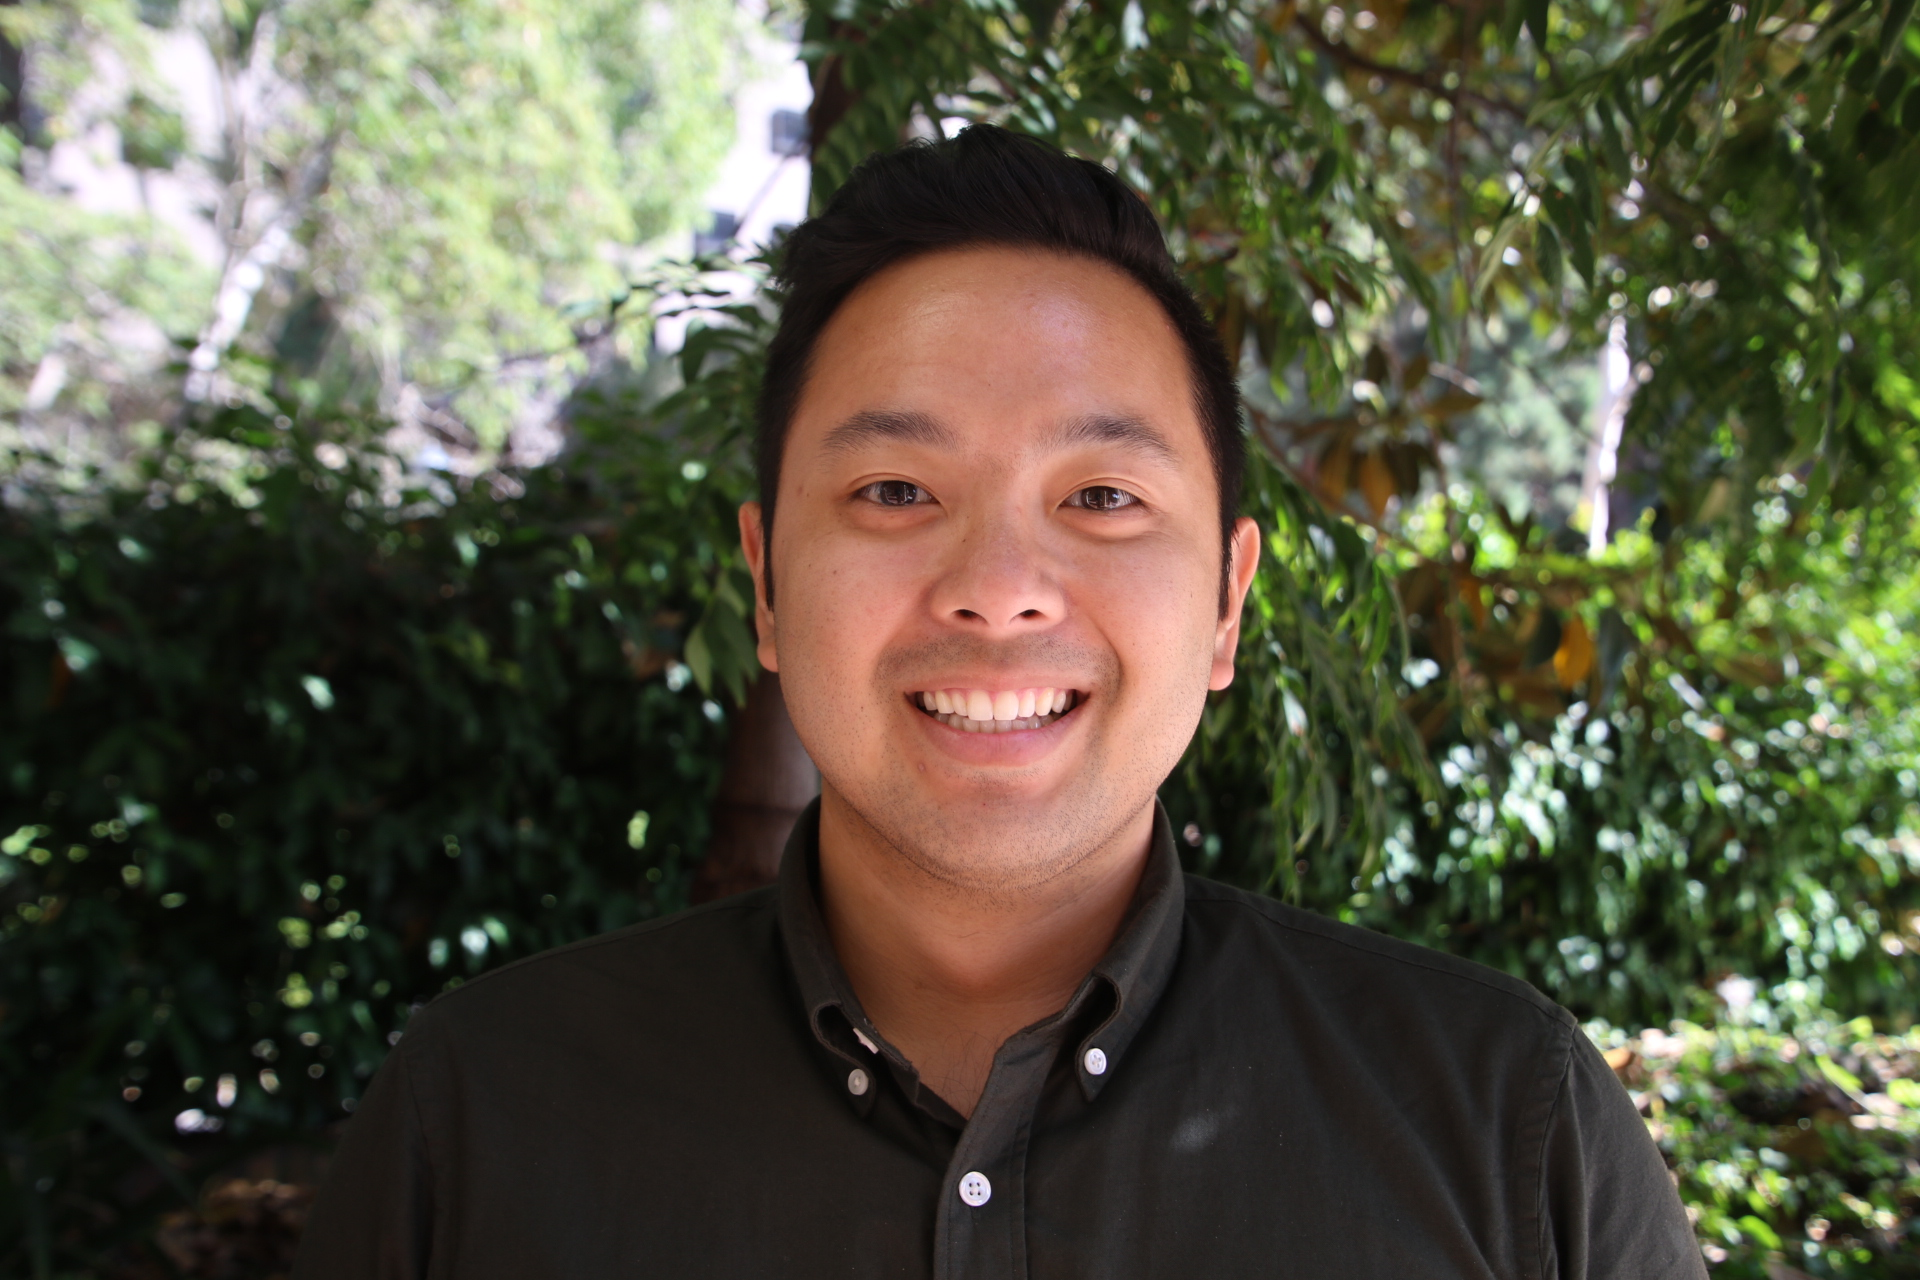 Kevin Truong